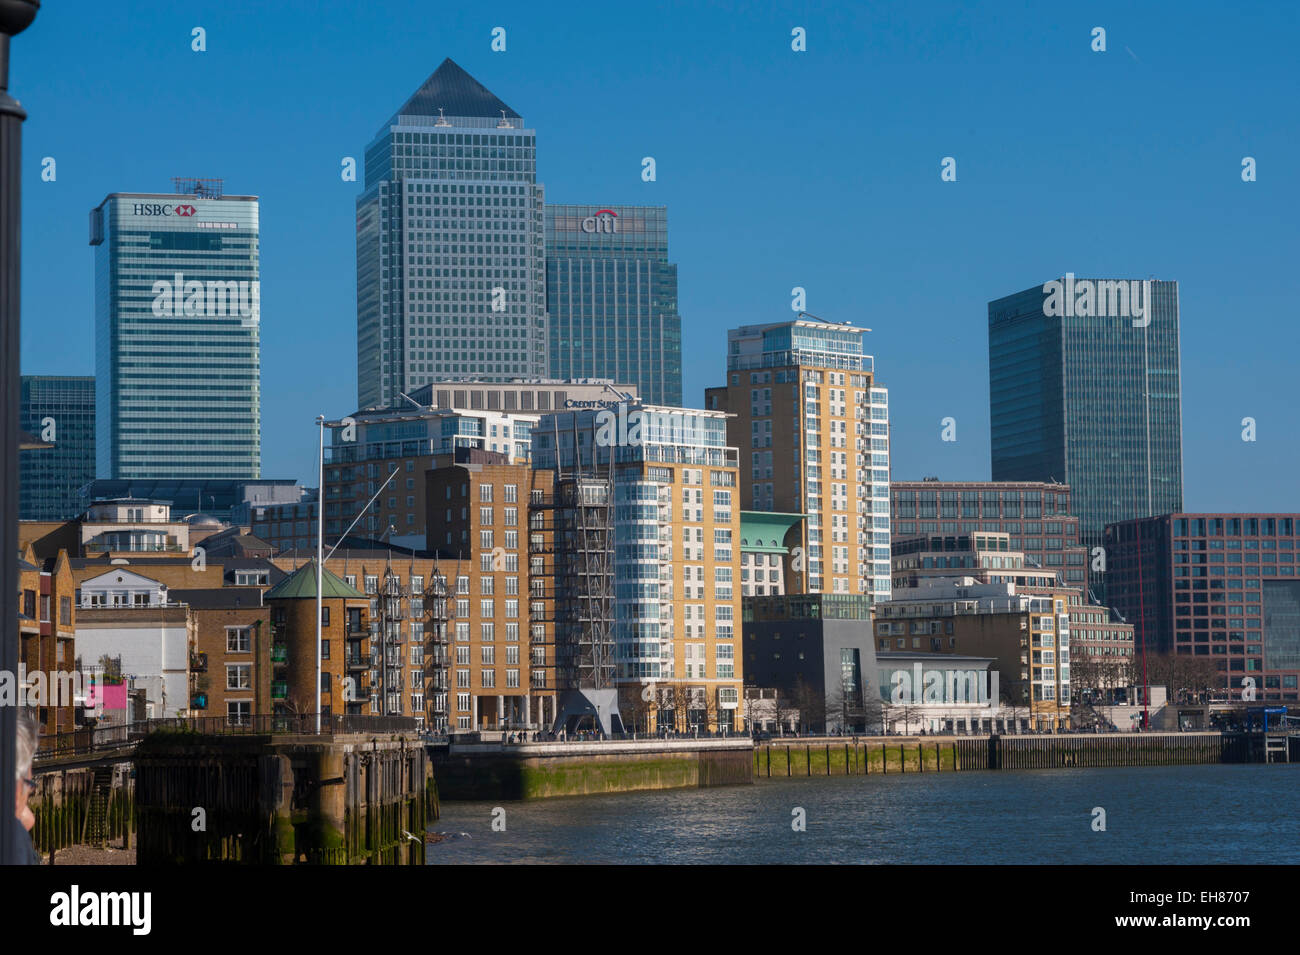 Looking at the towers of Docklands from Limehouse. - Stock Image